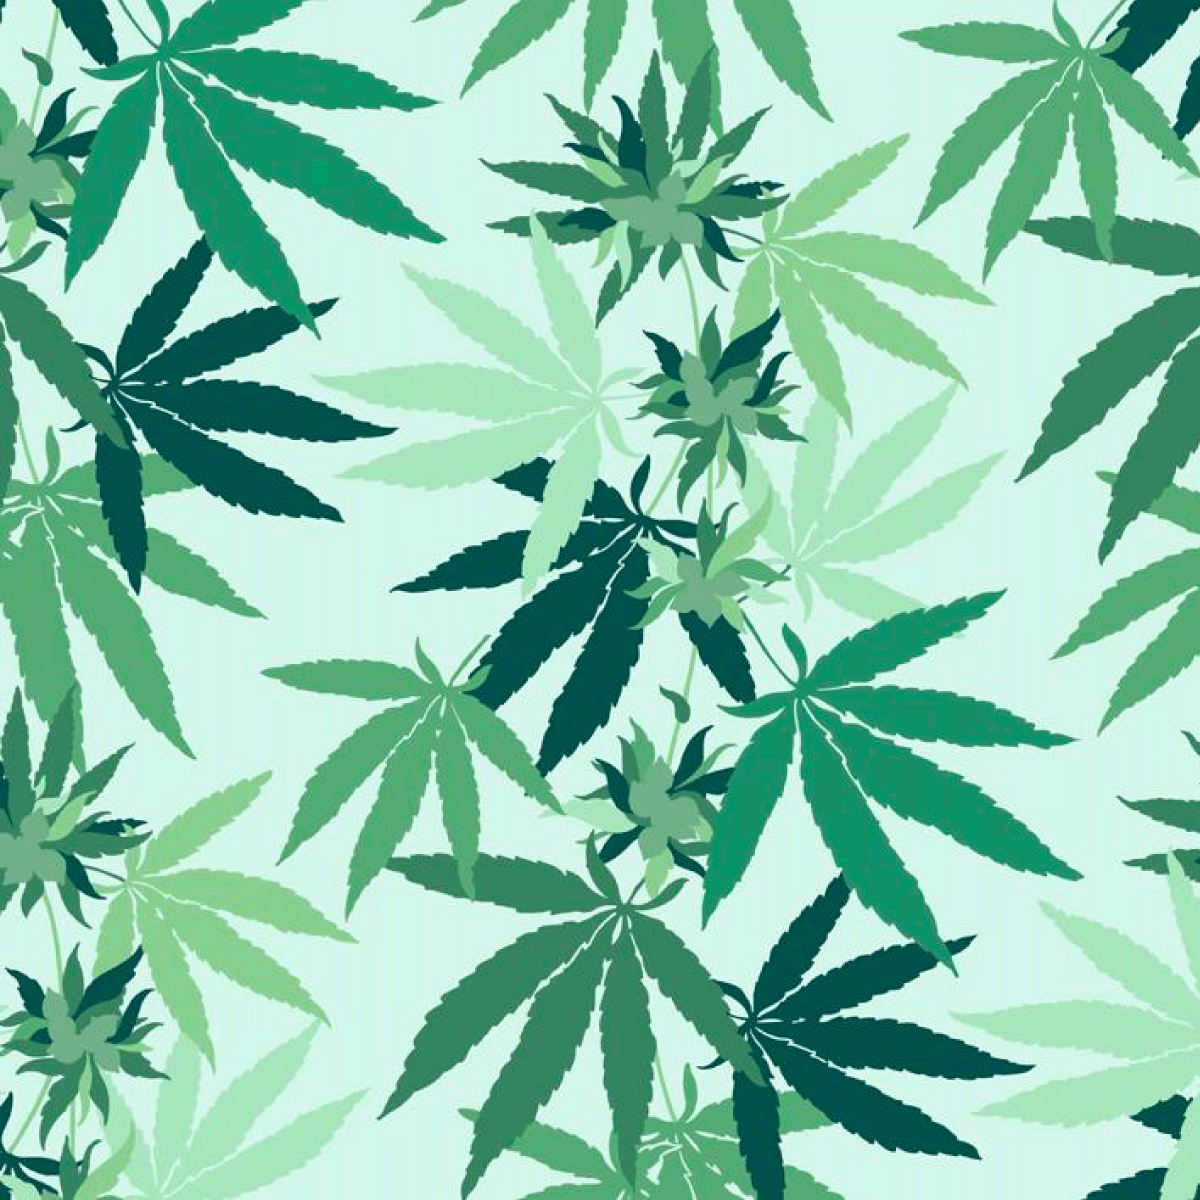 In The Weeds Removable Wallpaper - Mint